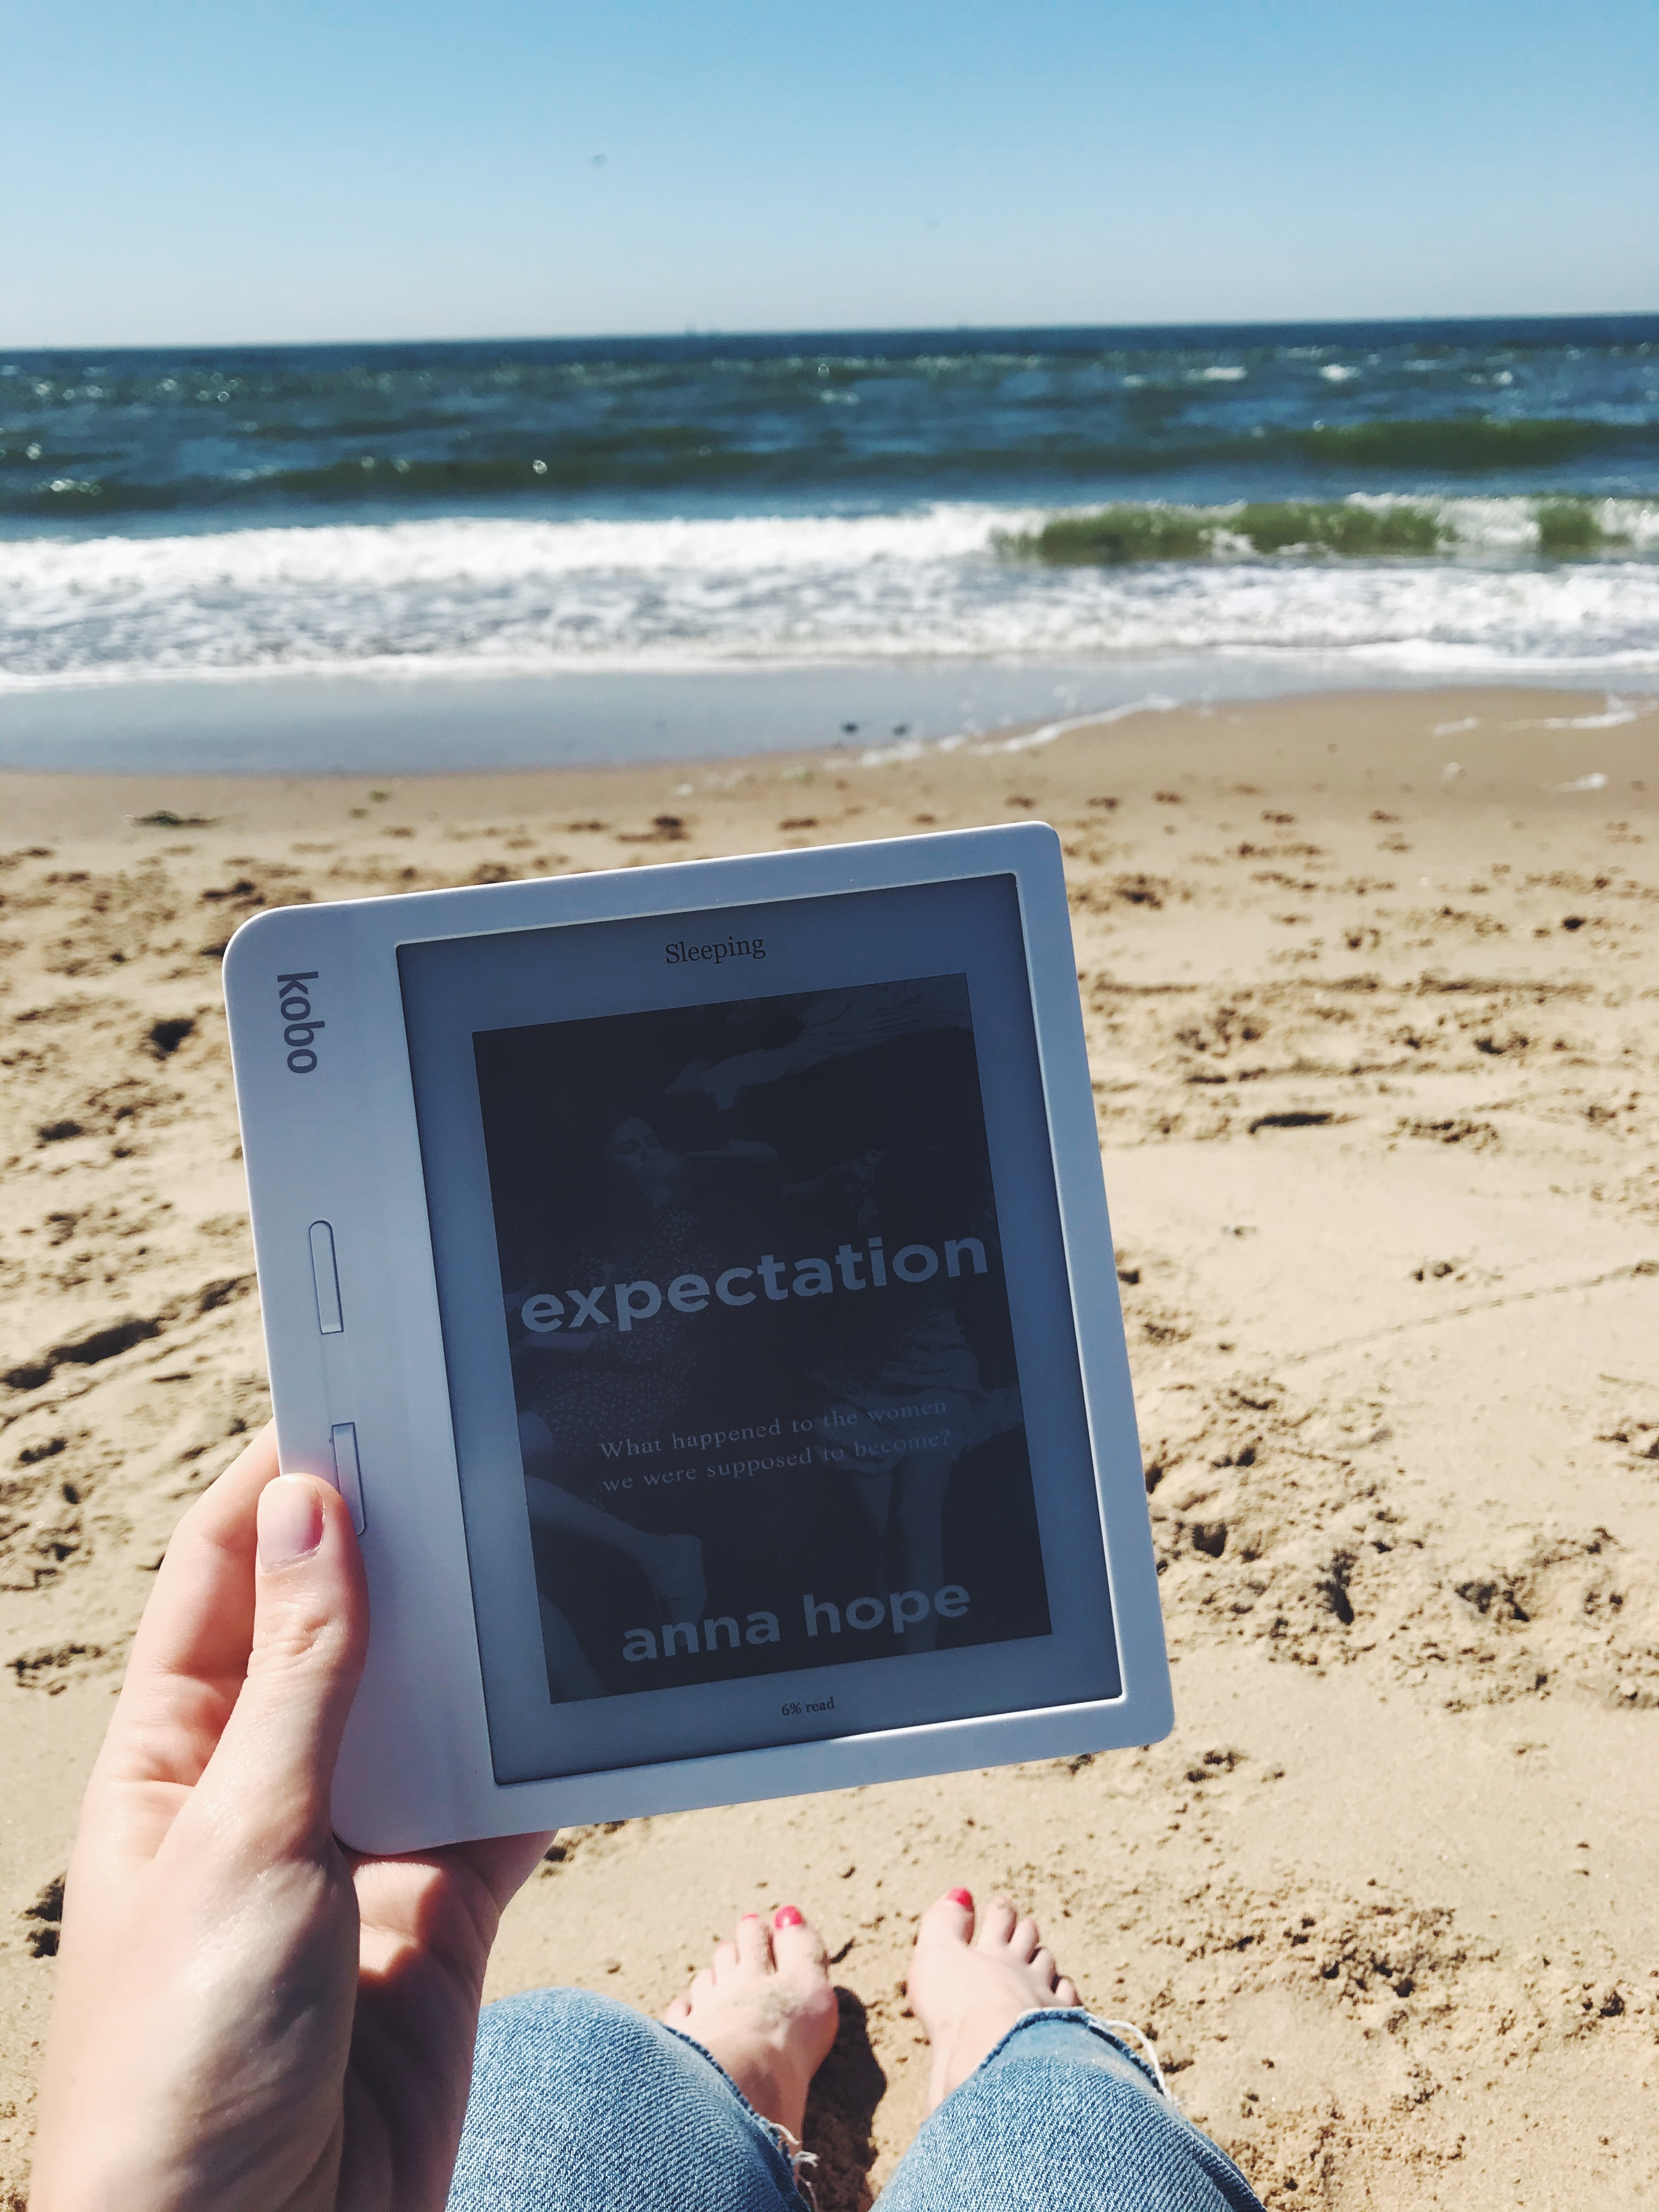 Expectations